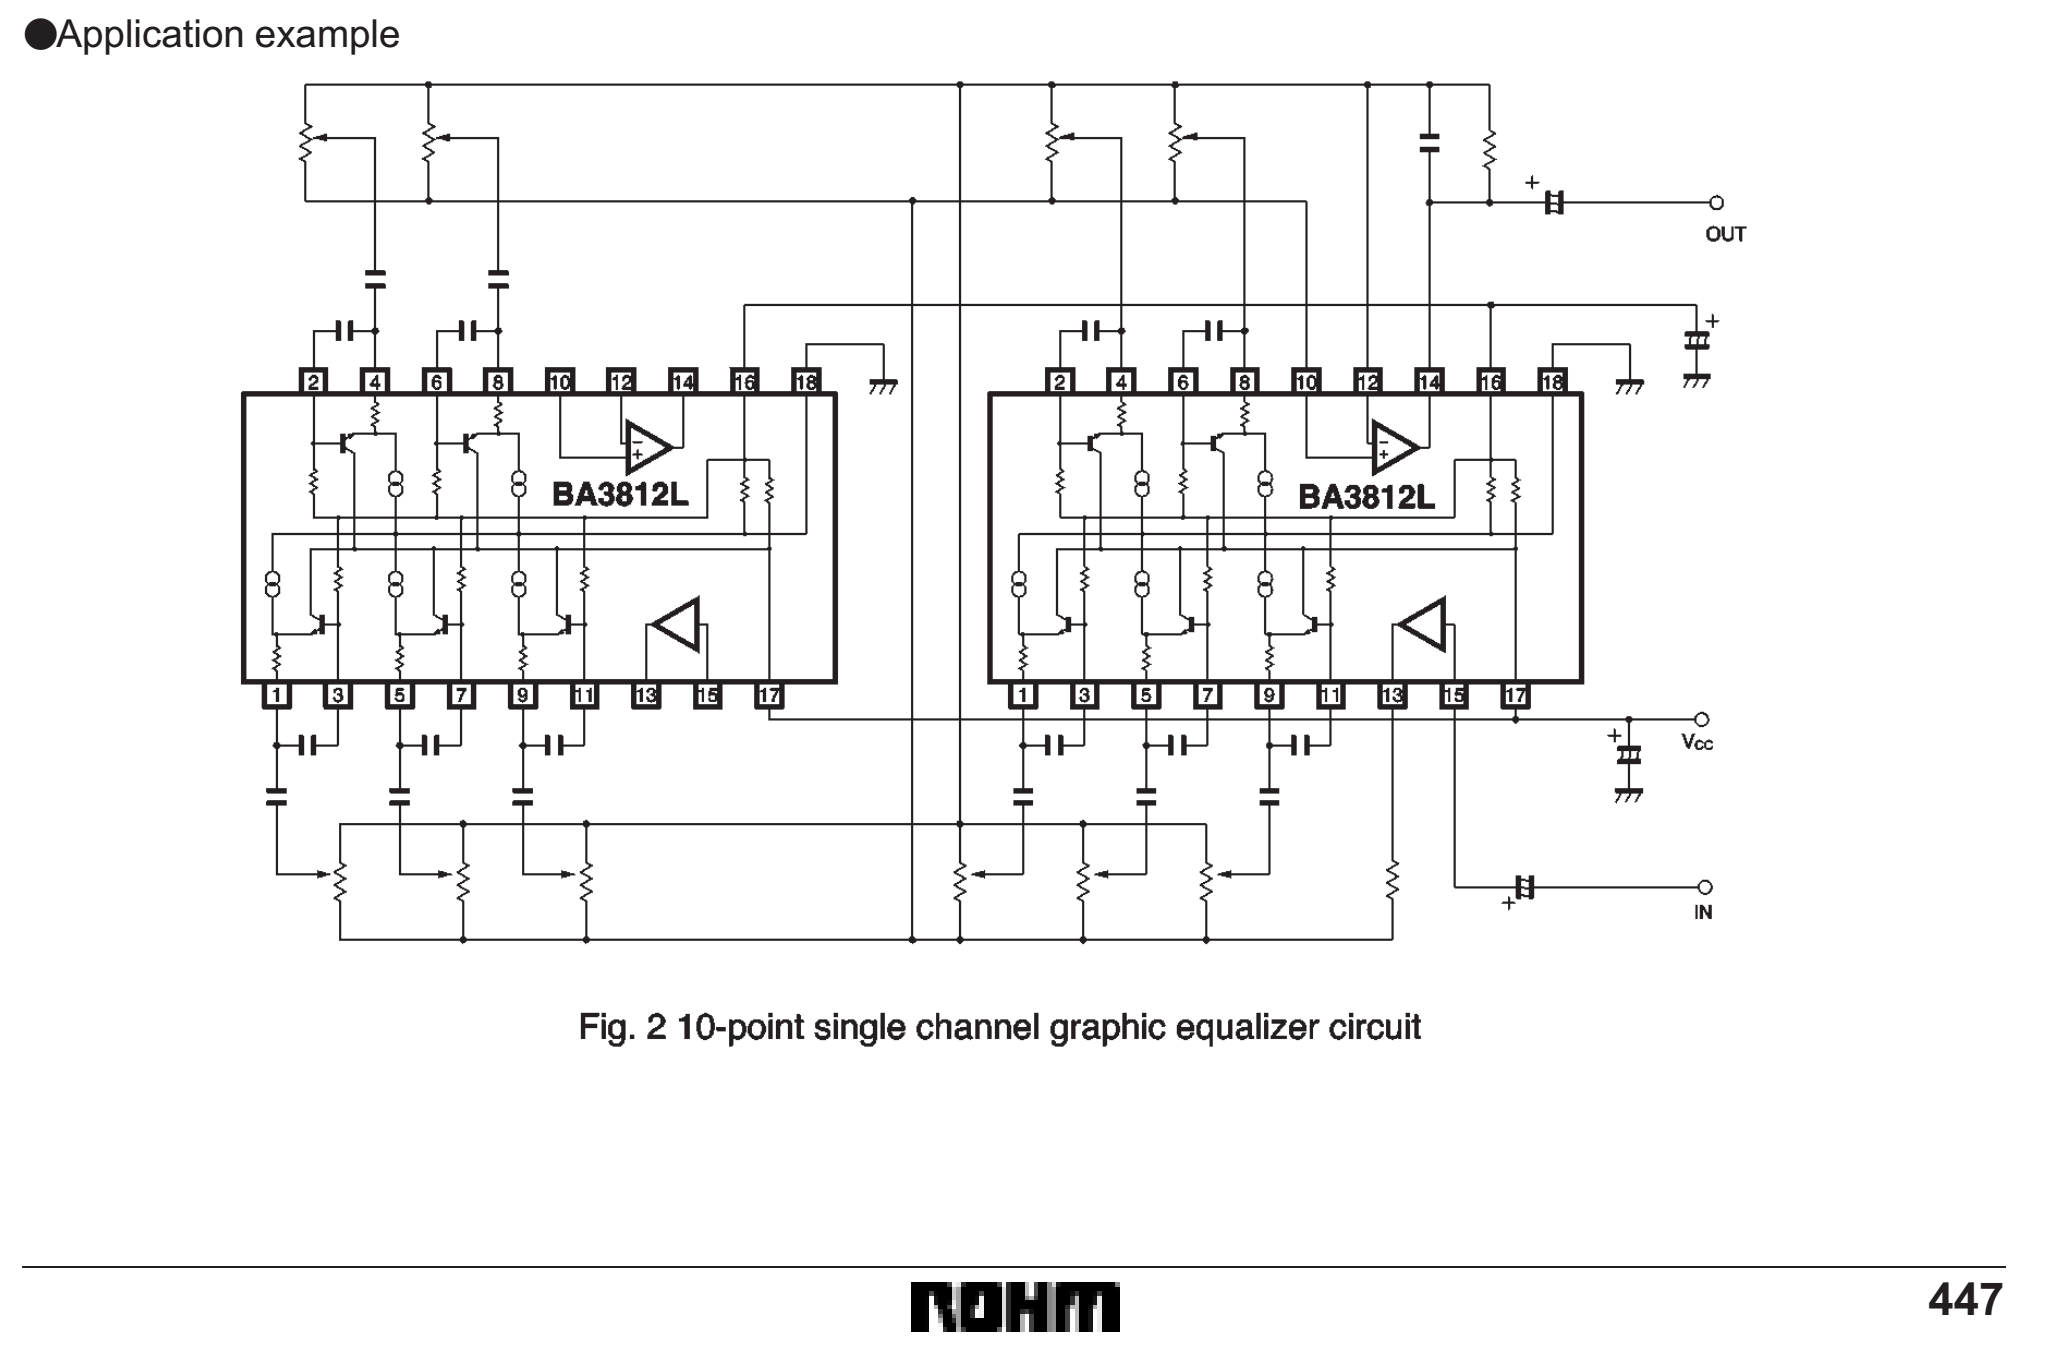 Resolved Ic Recommendations Led Audio Spectrum Analyzer Project Band Graphic Equalizer Circuit Together With Rf Power Meter Forum Ti E2e Community